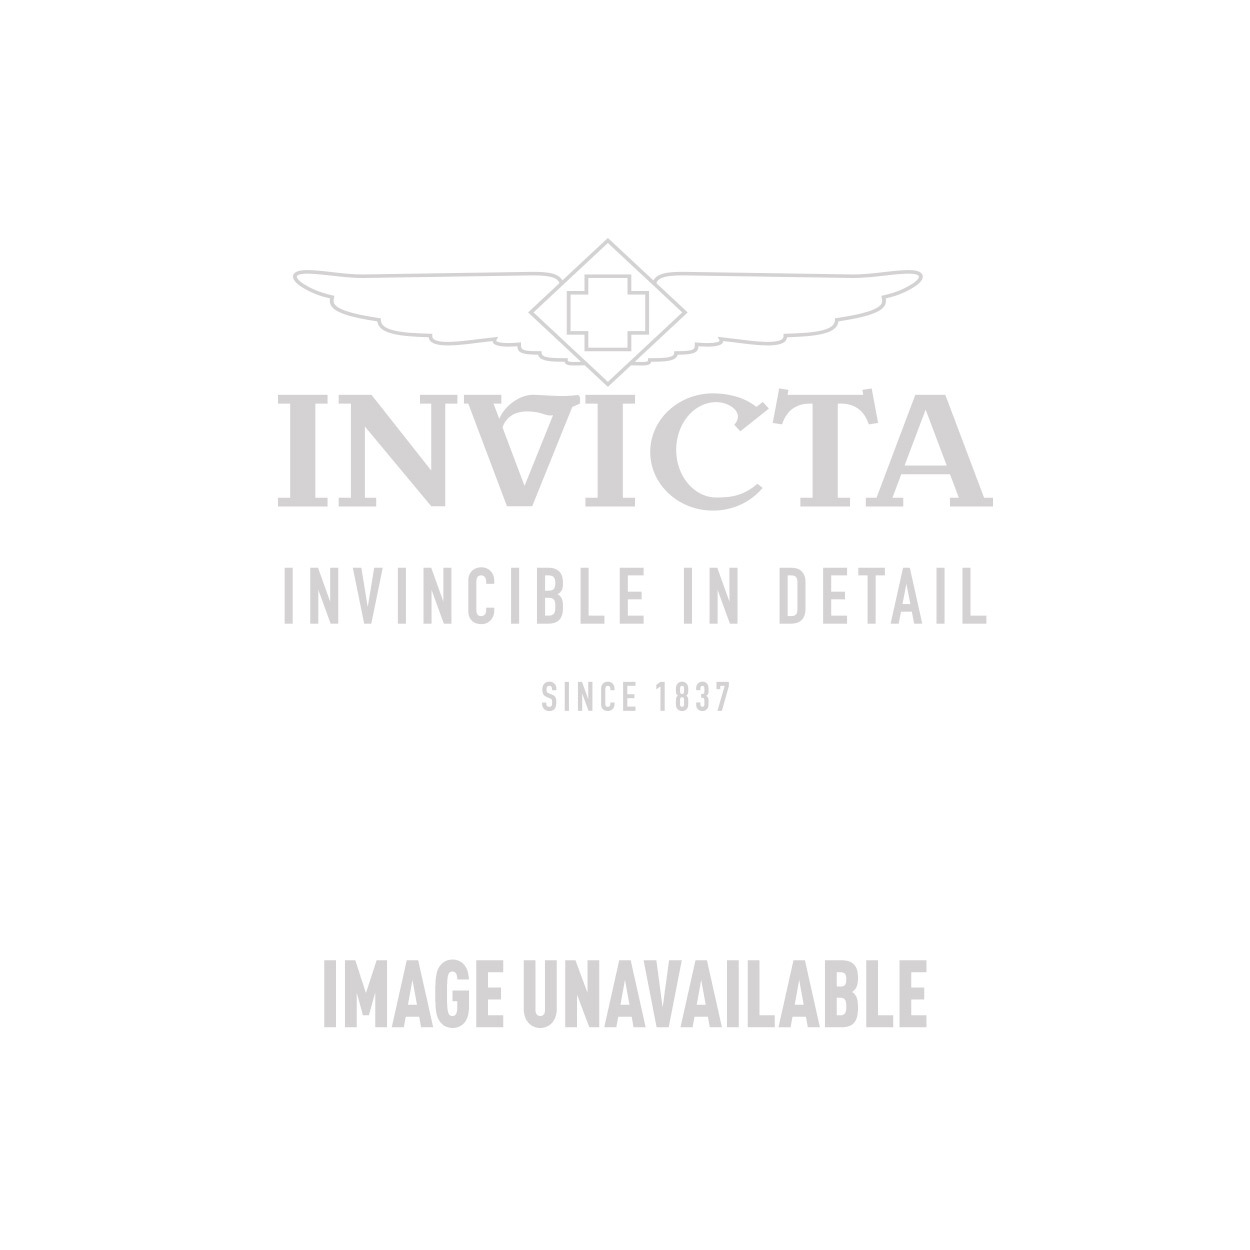 Invicta Specialty Swiss Movement Quartz Watch - Black, Stainless Steel case with Steel, Black tone Stainless Steel band - Model 21485